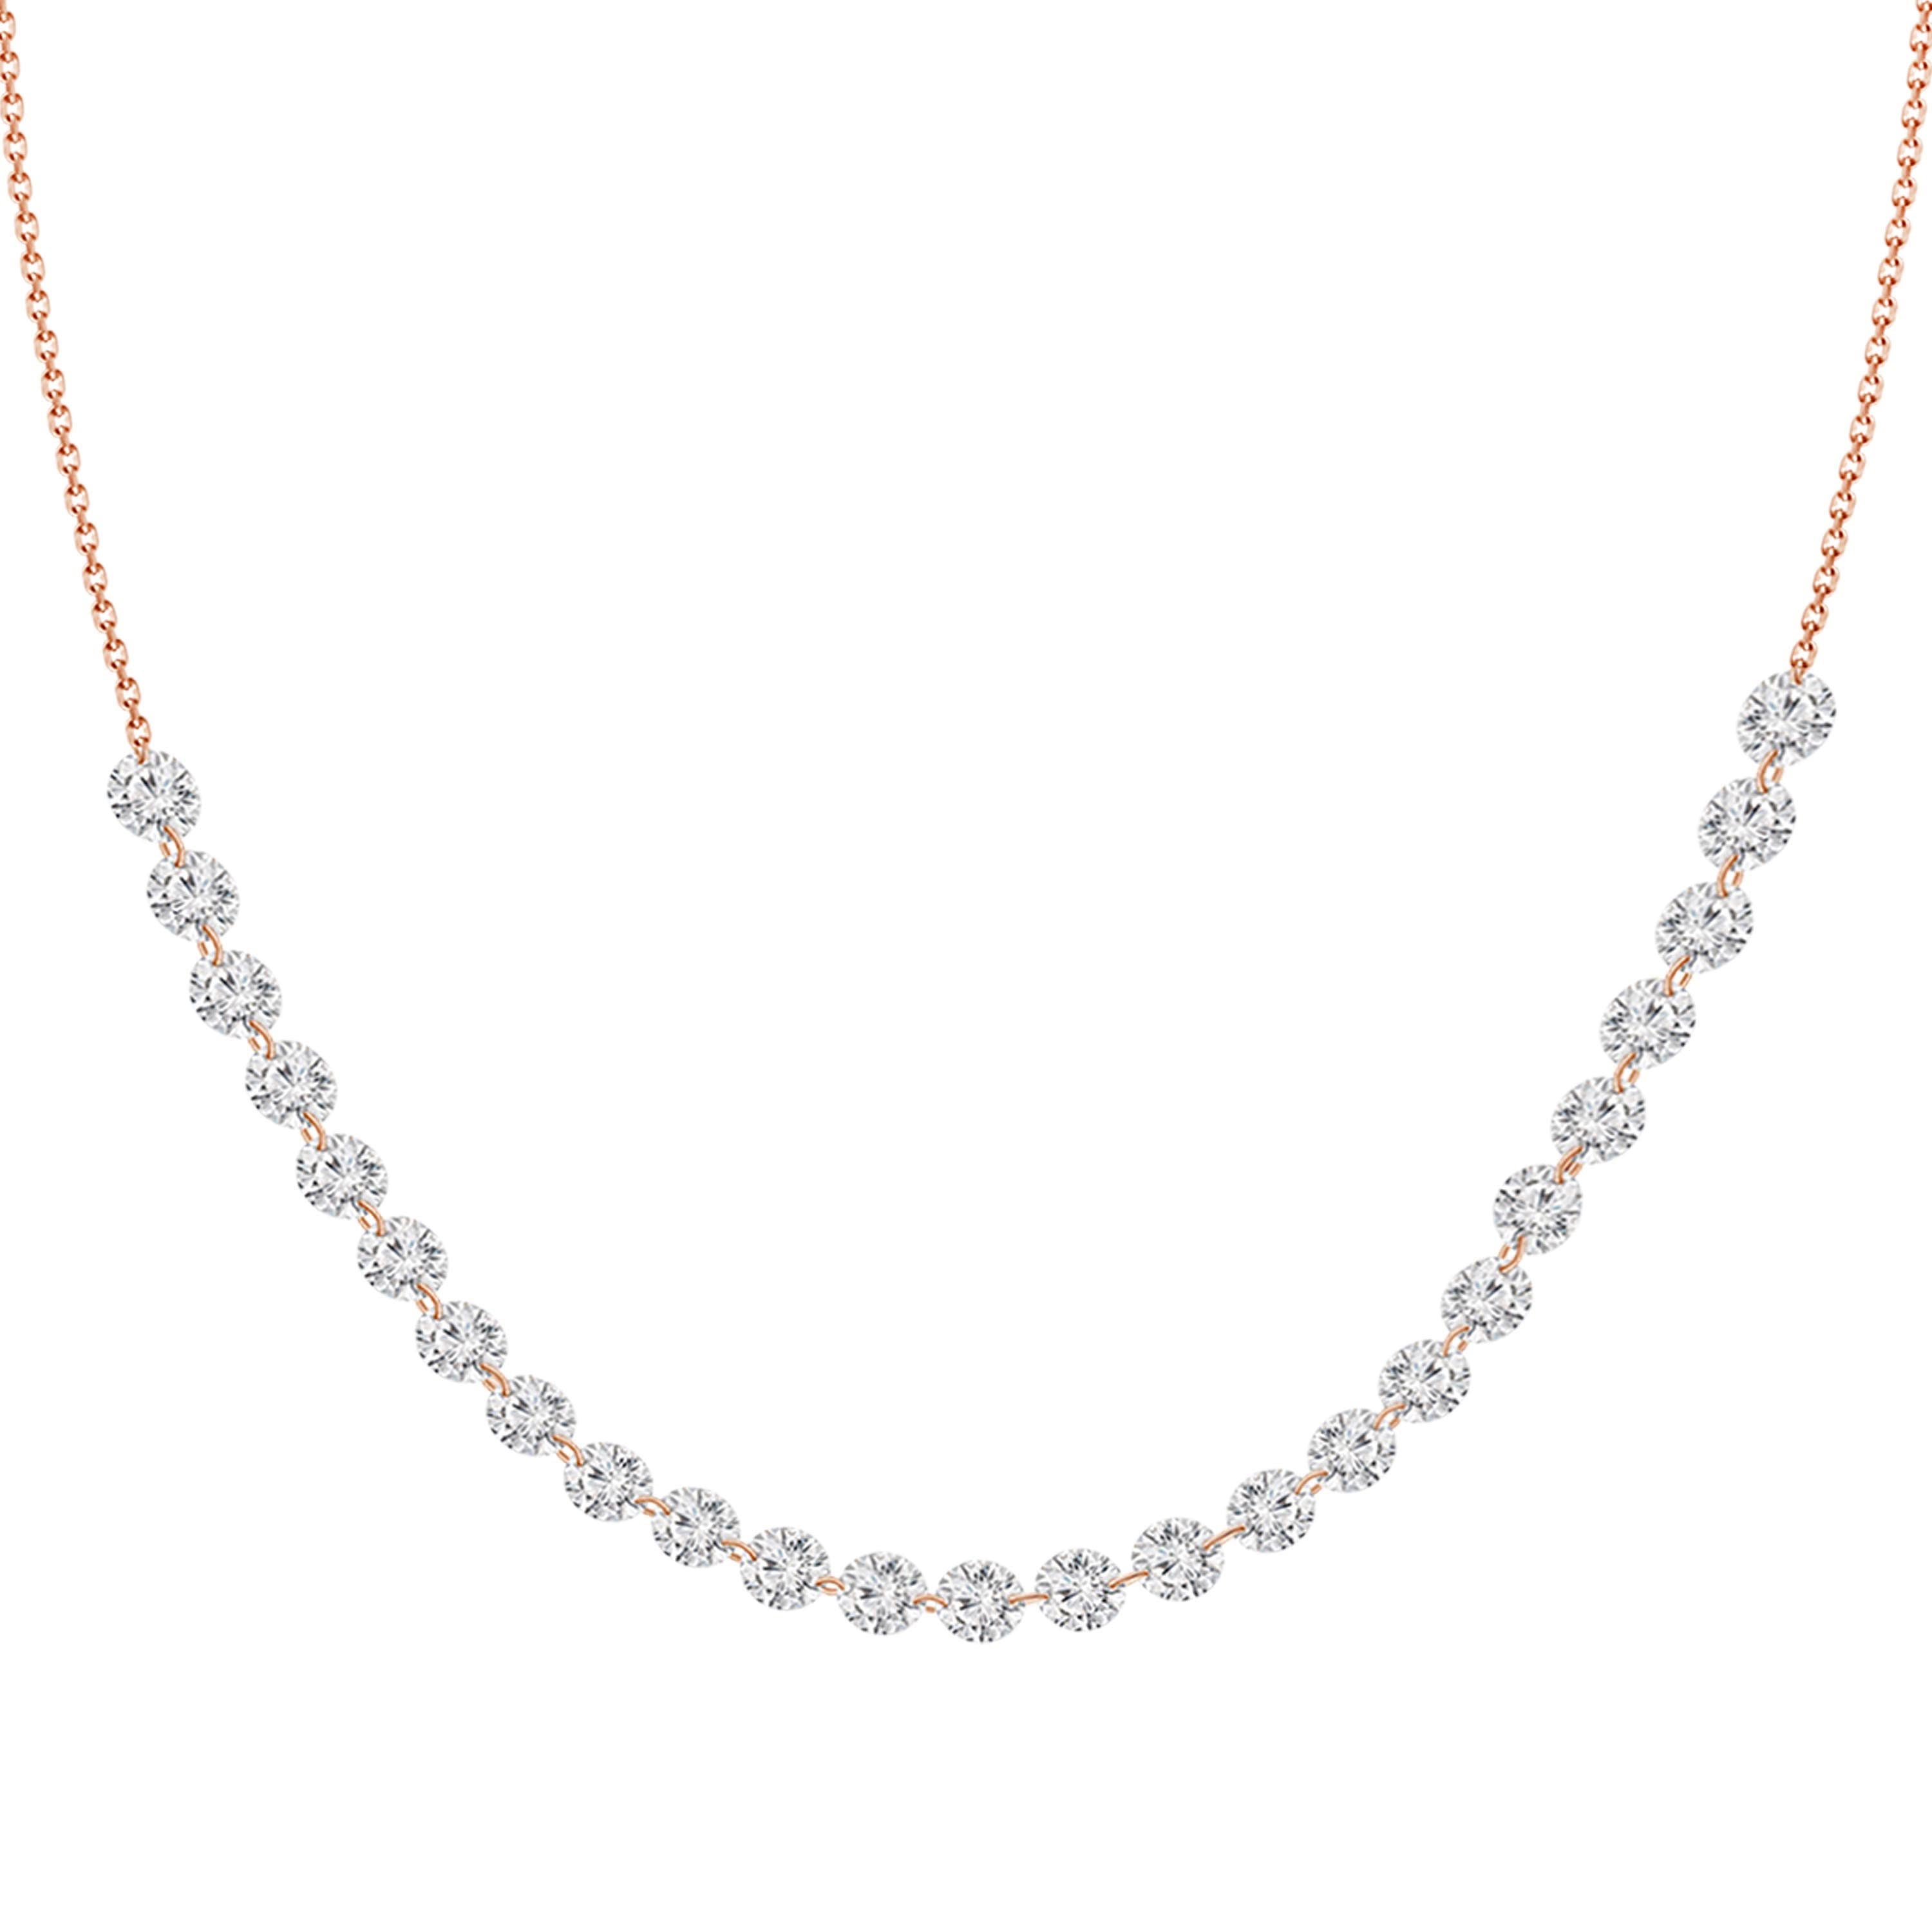 Nina Sequenced Floating Diamonds Necklace